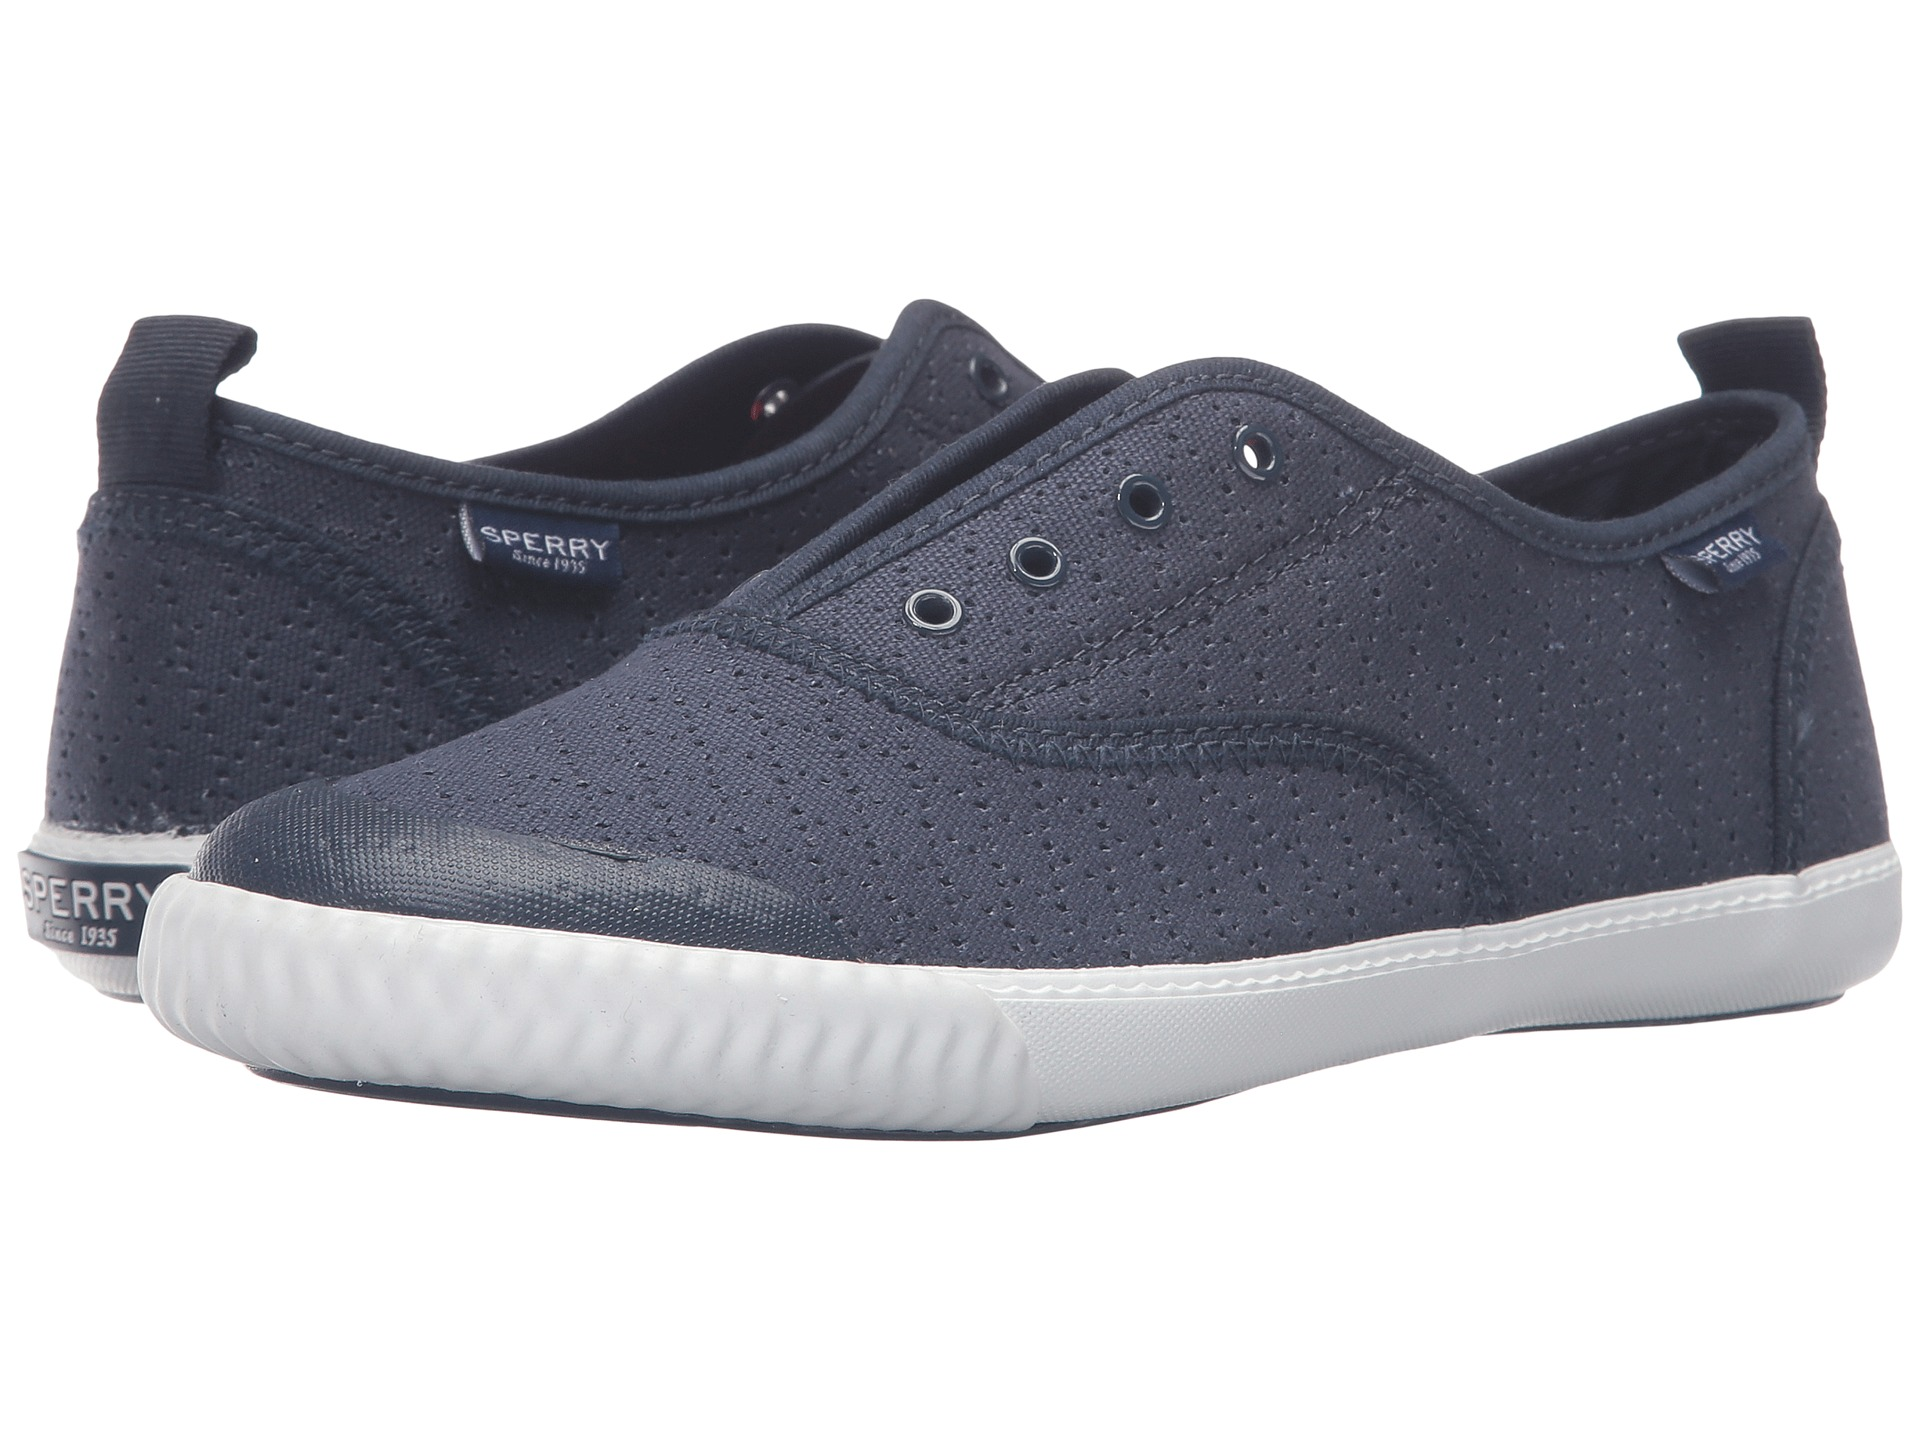 sperry top sider sayel clew perf canvas zappos free